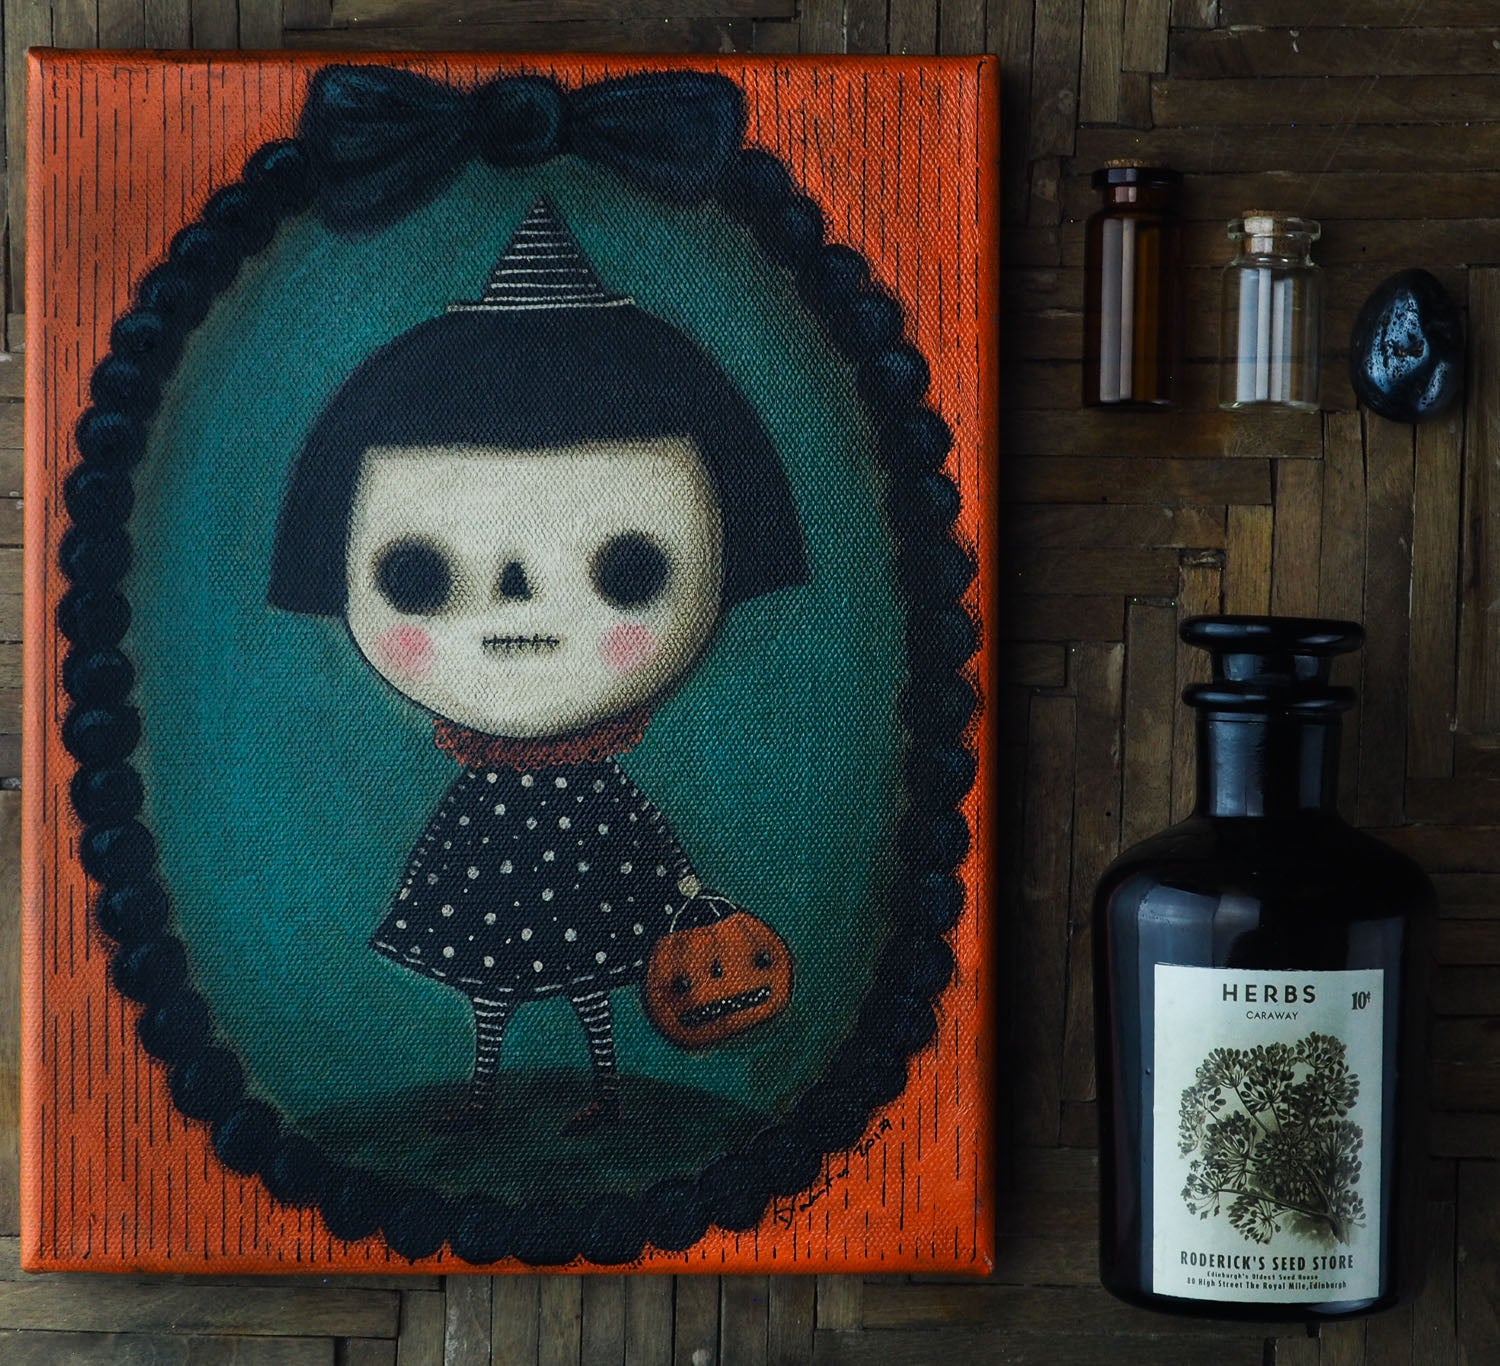 Original painting by Danita Art. Mixed media art using acrylics, oils, pastels, graphite and color pencils for an amazing Halloween decoration to accent your home decor.